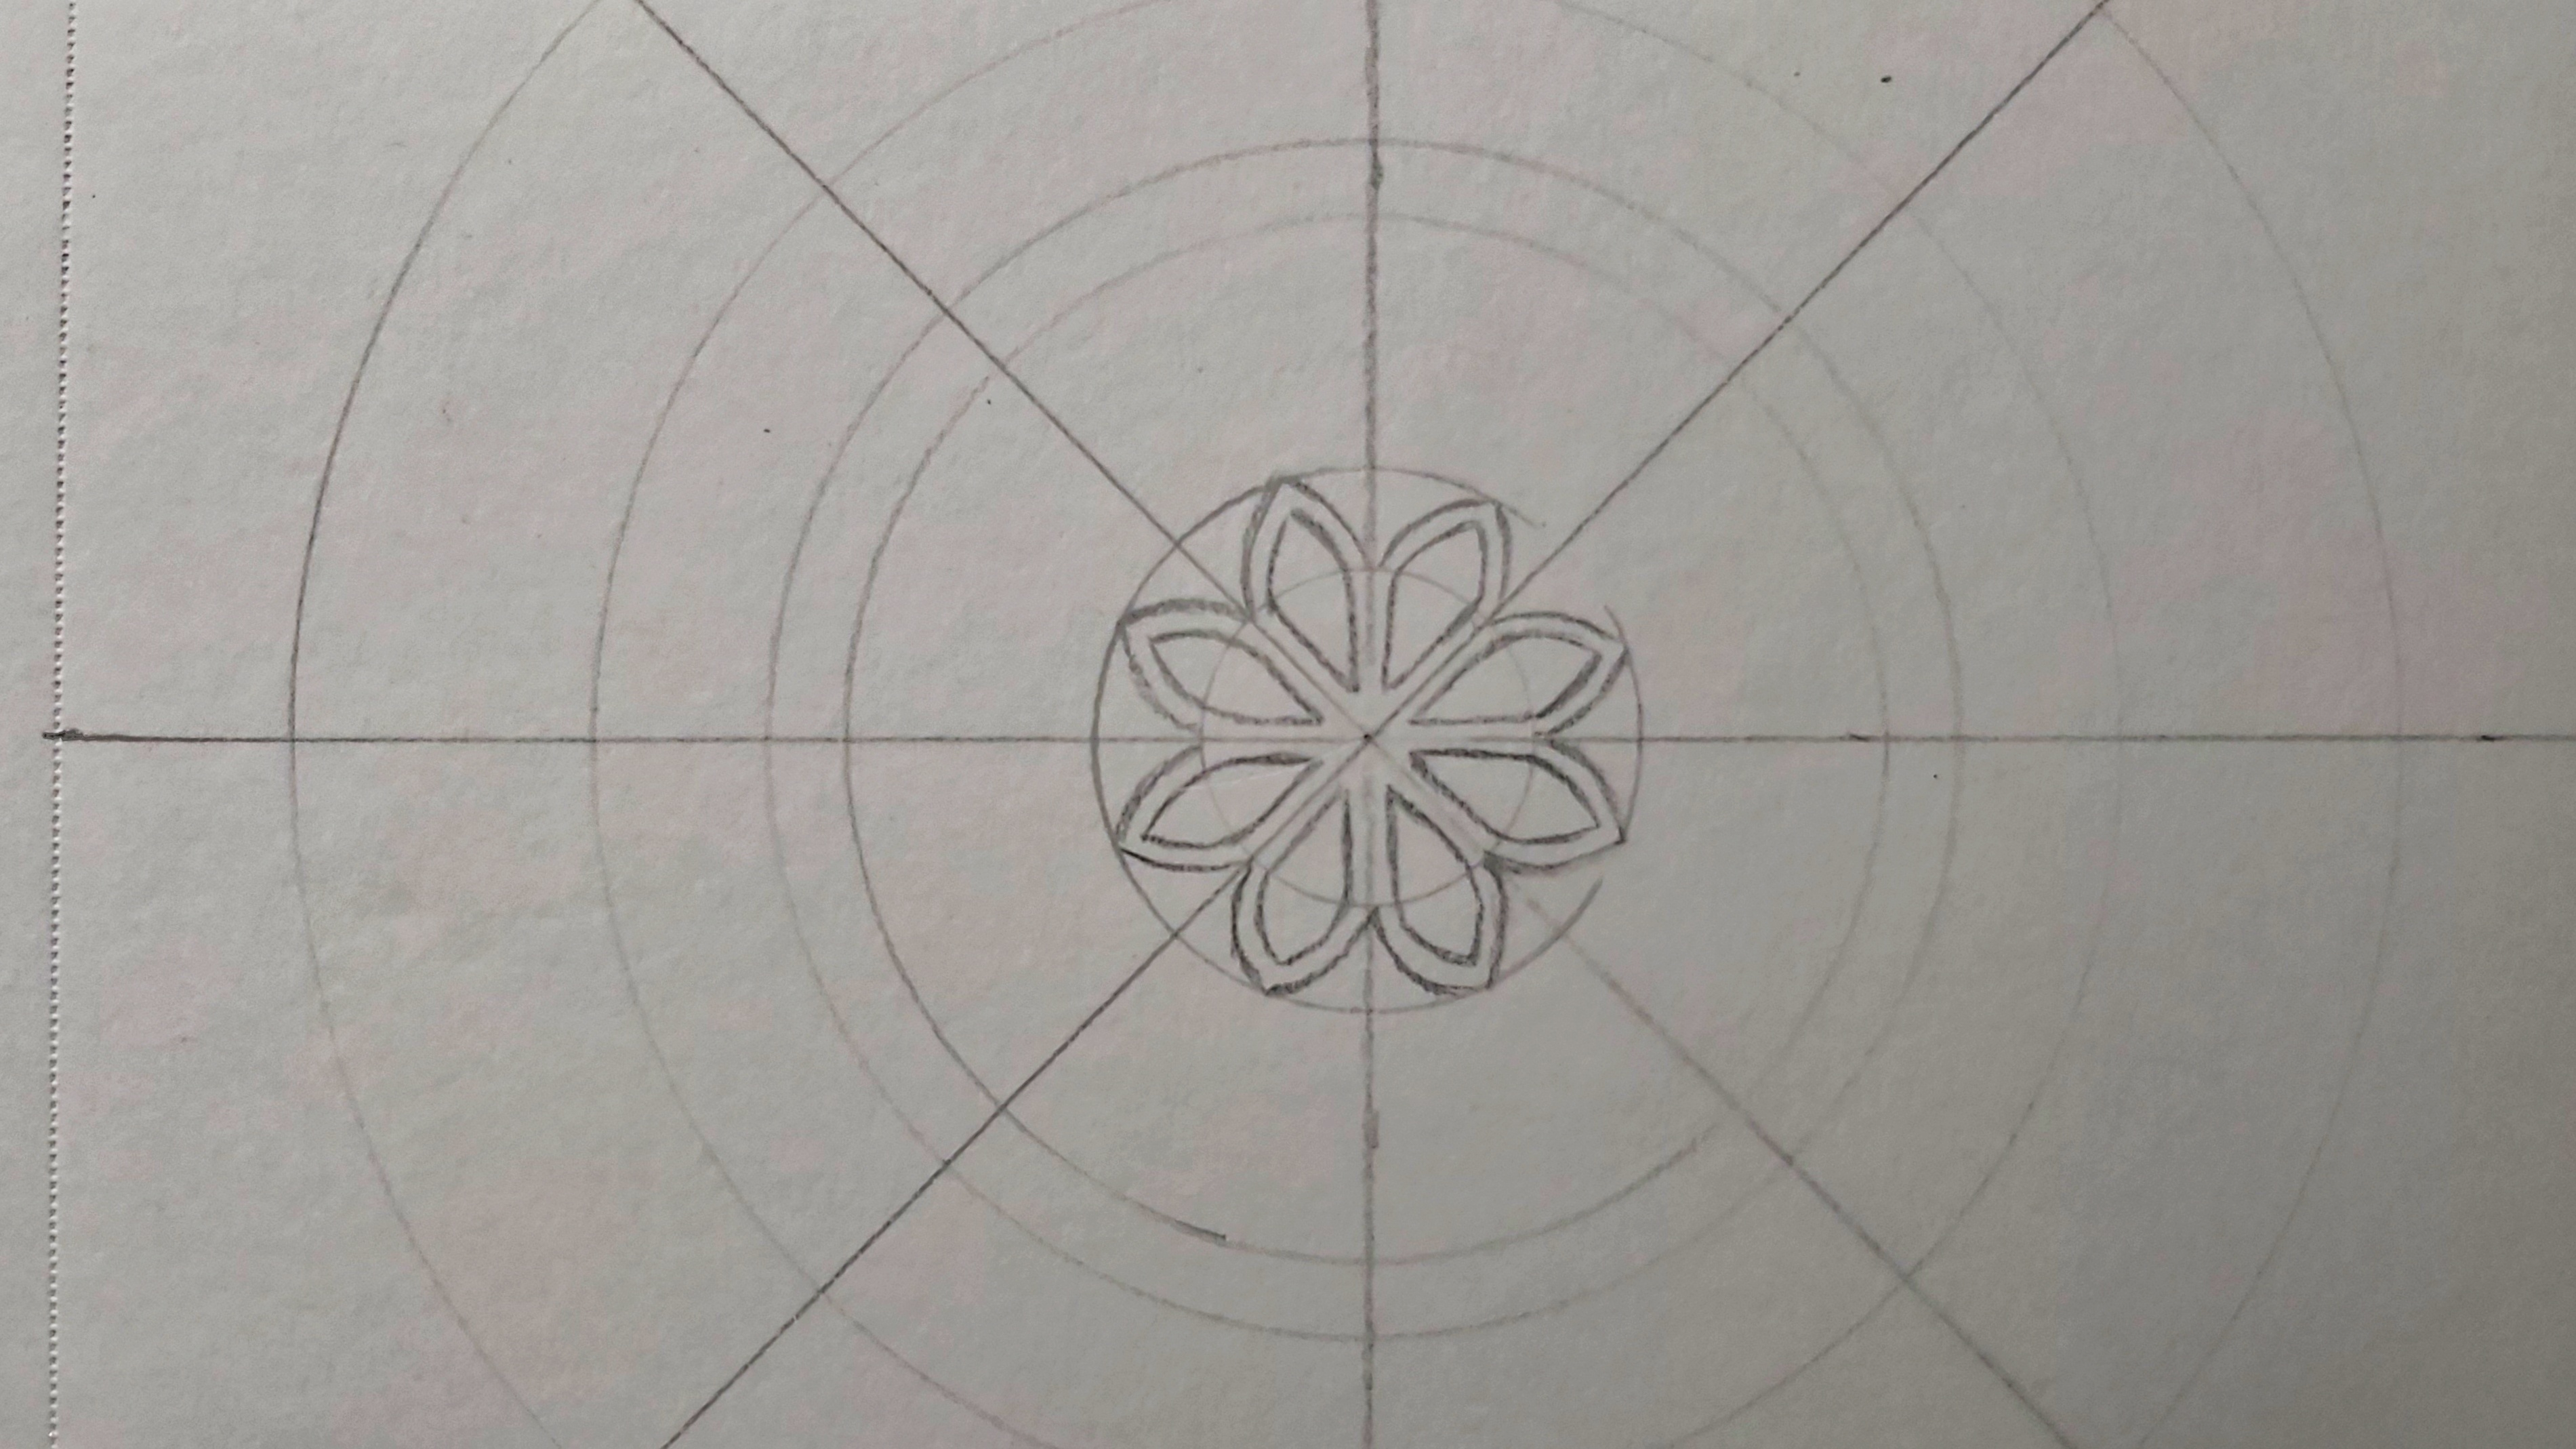 The first petals in the first circle, pencil